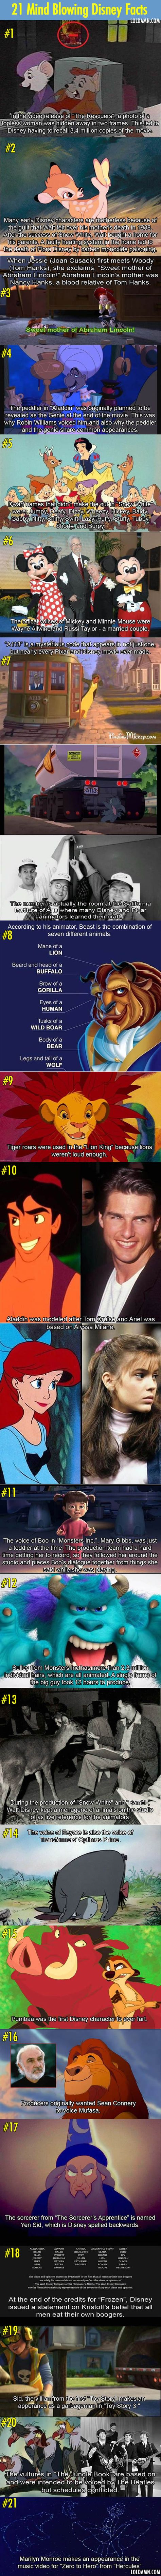 What if you know some secrets hidden behind the scene of Disney movies. They're going to blow your mind!-- These are all pretty funny and interesting Disney facts. Disney Pixar, Disney Movie Trivia, Disney Fun Facts, Film Disney, Disney And Dreamworks, Interesting Disney Facts, Fun Movie Facts, Disney World Facts, Disney Love